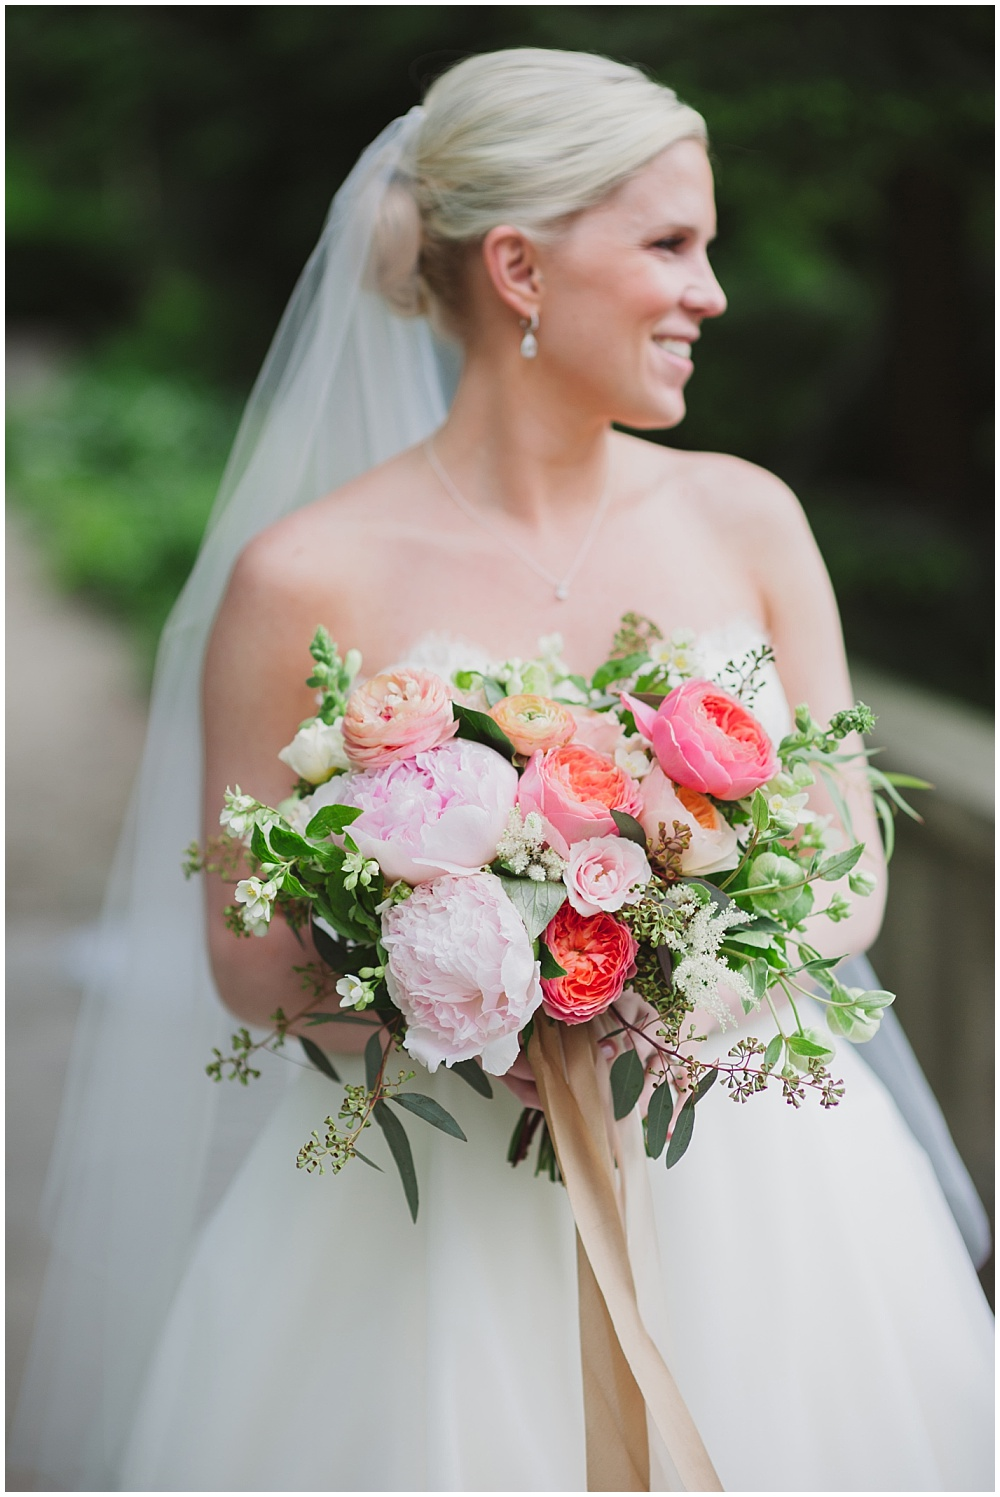 Blush, pink and green spring bridal bouquet | Ritz Charles Garden Pavilion Wedding by Stacy Able Photography & Jessica Dum Wedding Coordination